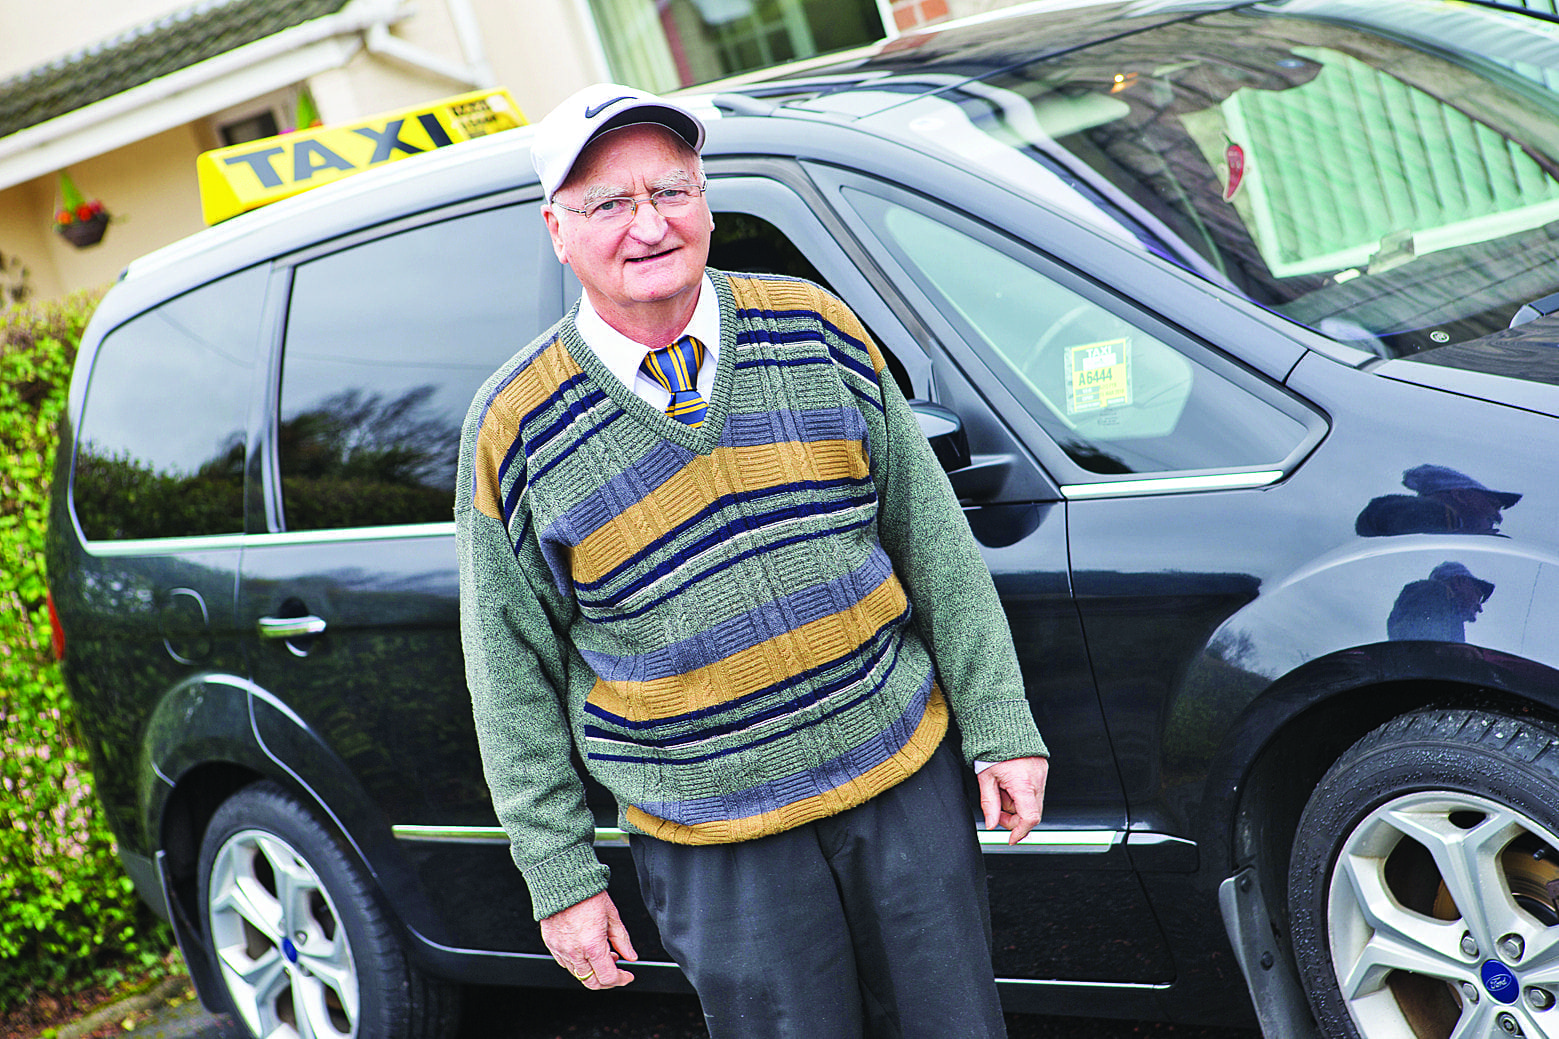 King of the road! Last journey for taxi driver Eric as he retires after 56 years behind the wheel